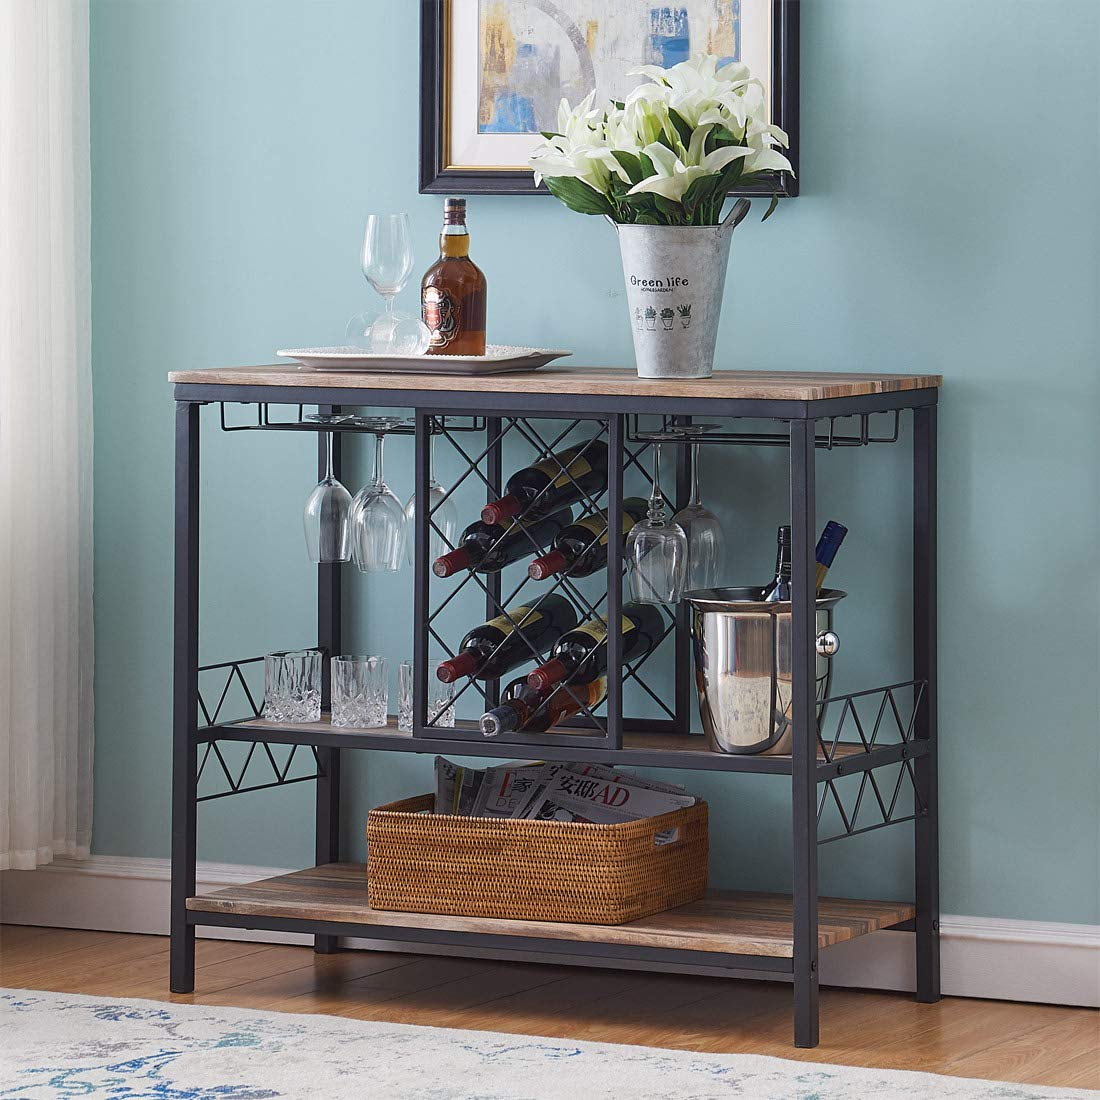 O&K Furniture Industrial Wine Rack Table with Glass Holder, Console/Buffet Table with Storage, Brown